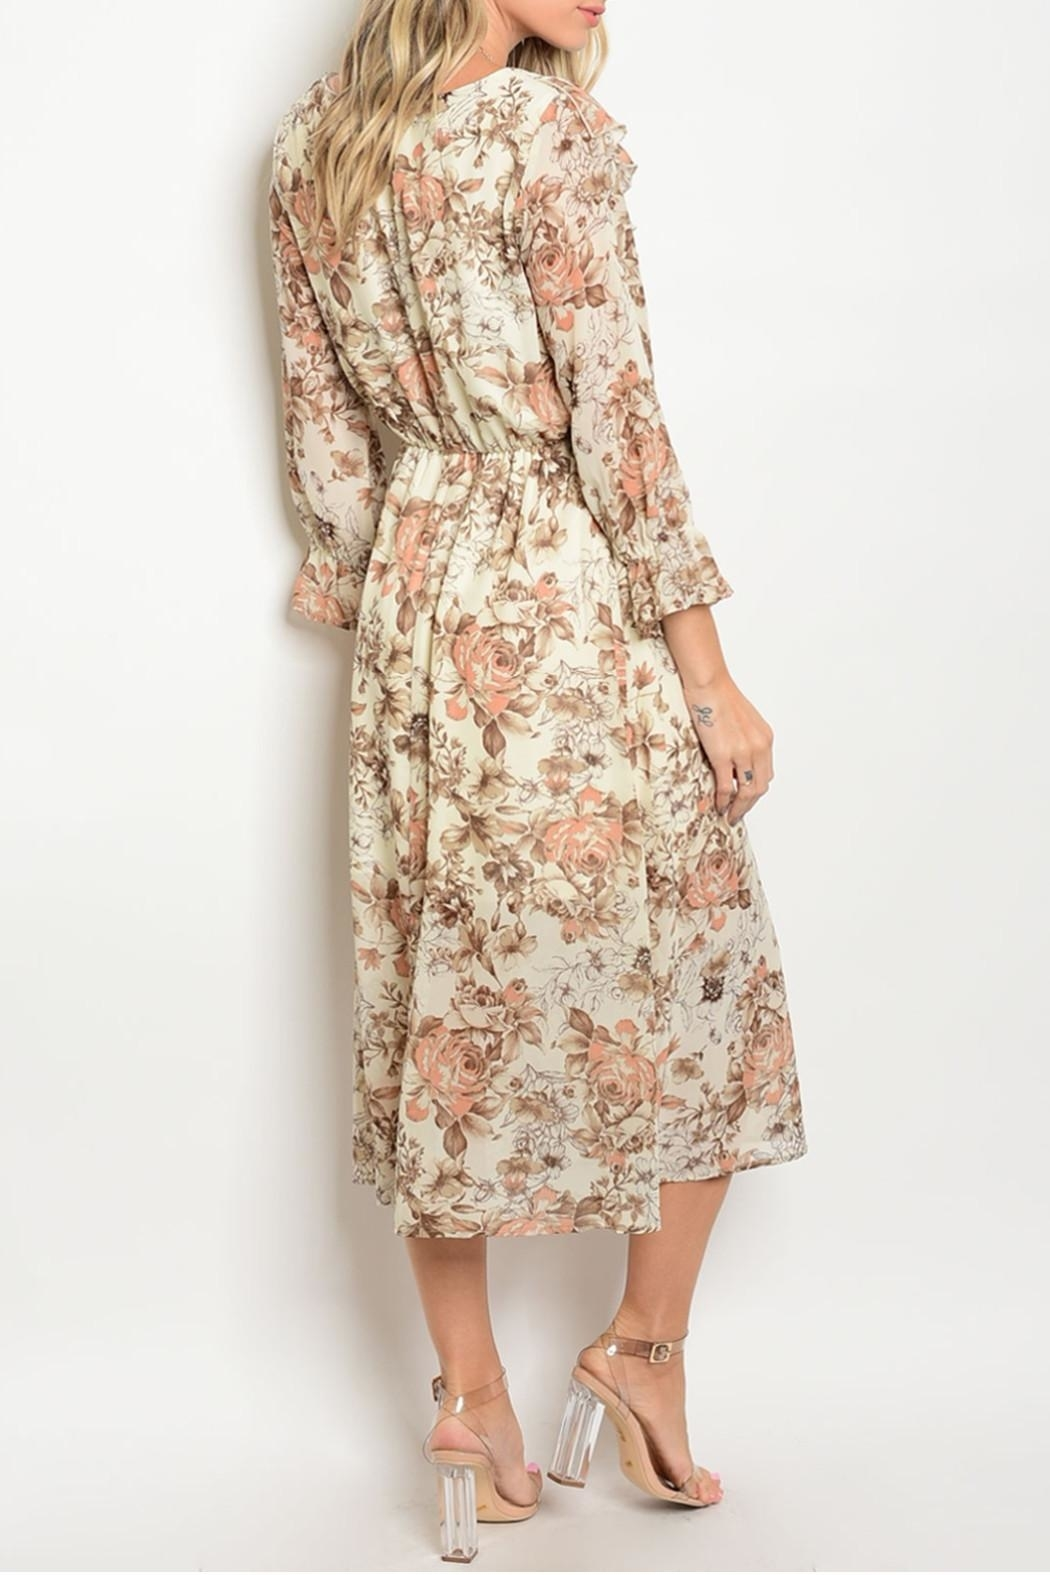 One Story Autumn Floral Ruffle Dress - Front Full Image